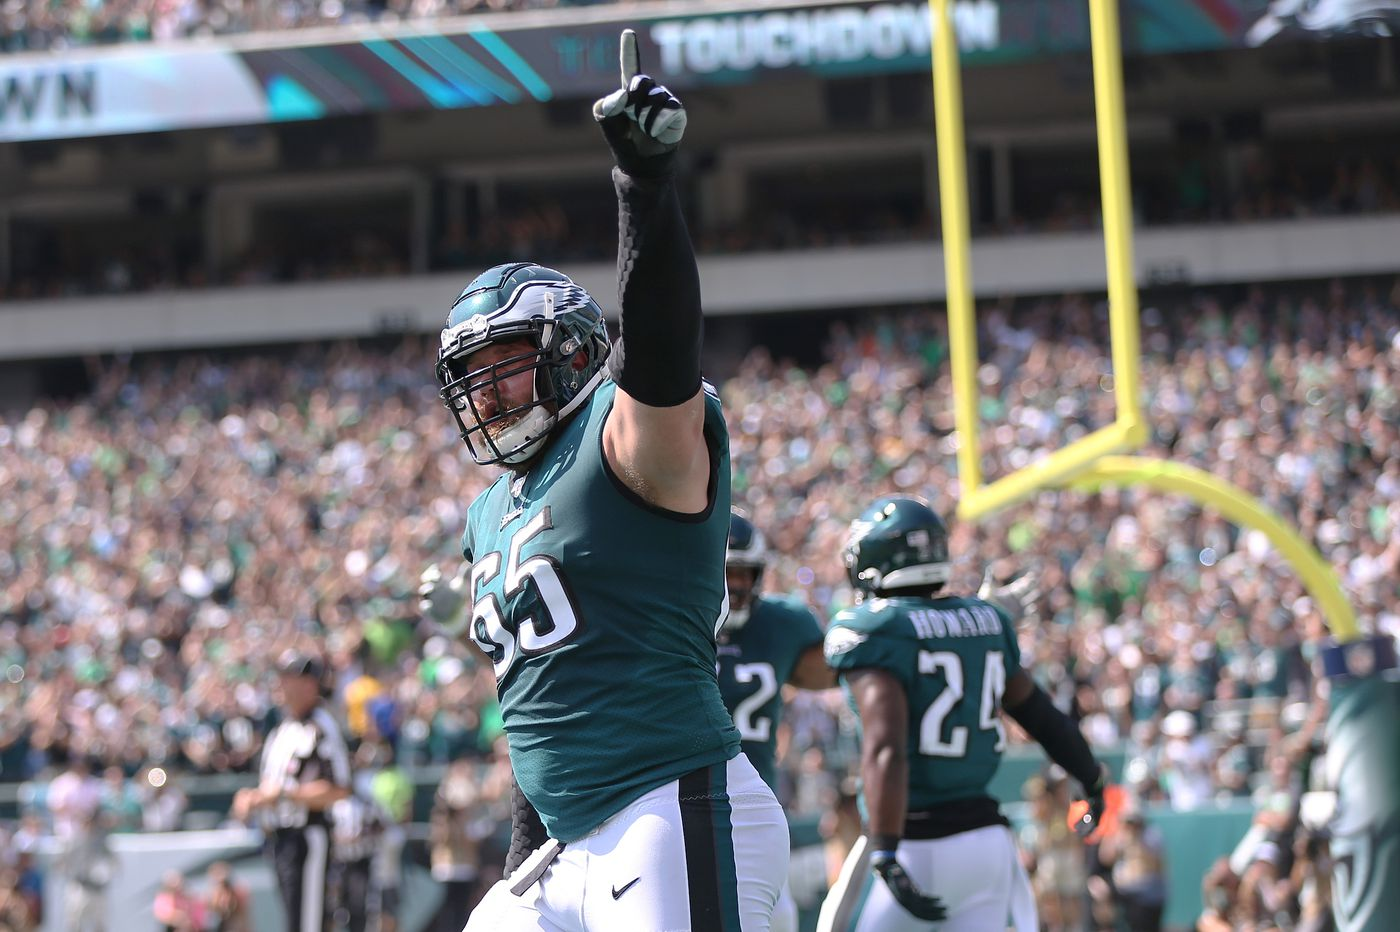 Eagles' Lane Johnson, Nate Gerry removed from Reserve/COVID-19 list and cleared for practice